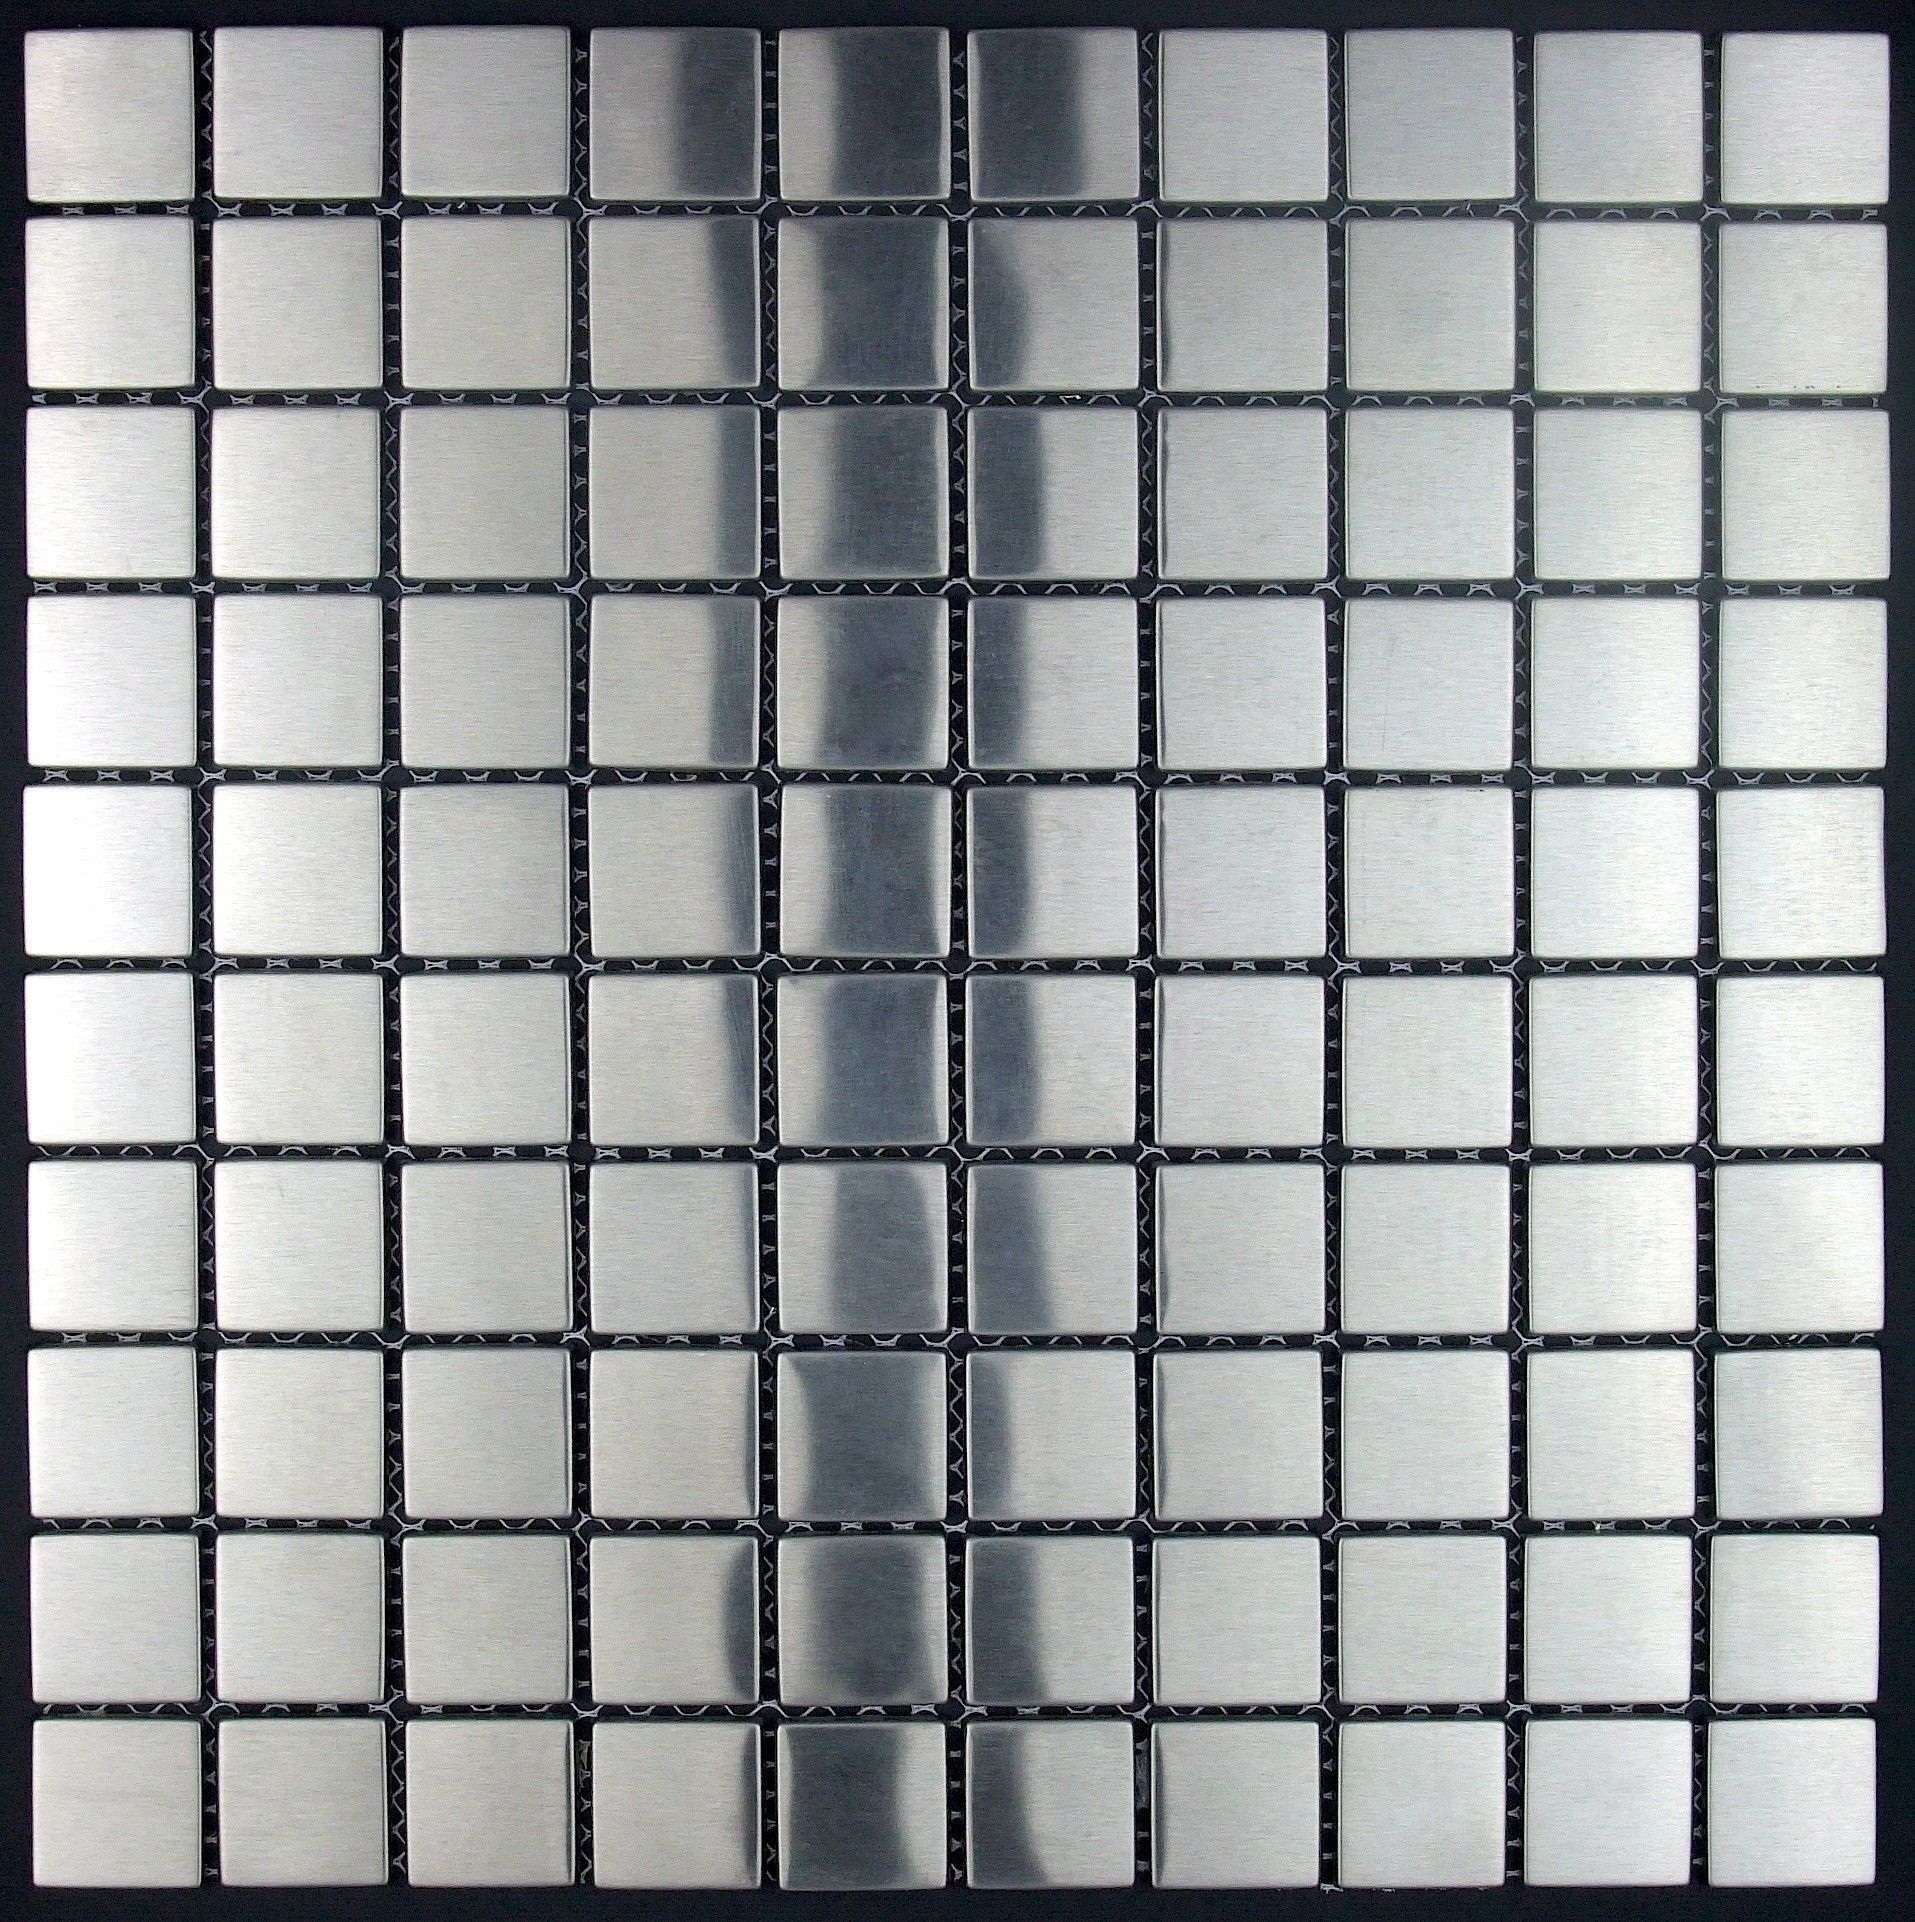 Stainless Steel Tiles Kitchen And Bathroom Mi Reg3013 90 Length 11 61 In Width 29 5 Cm Thickness 5 Mm Material Stai Carrelage Inox Inox Carrelage Mural